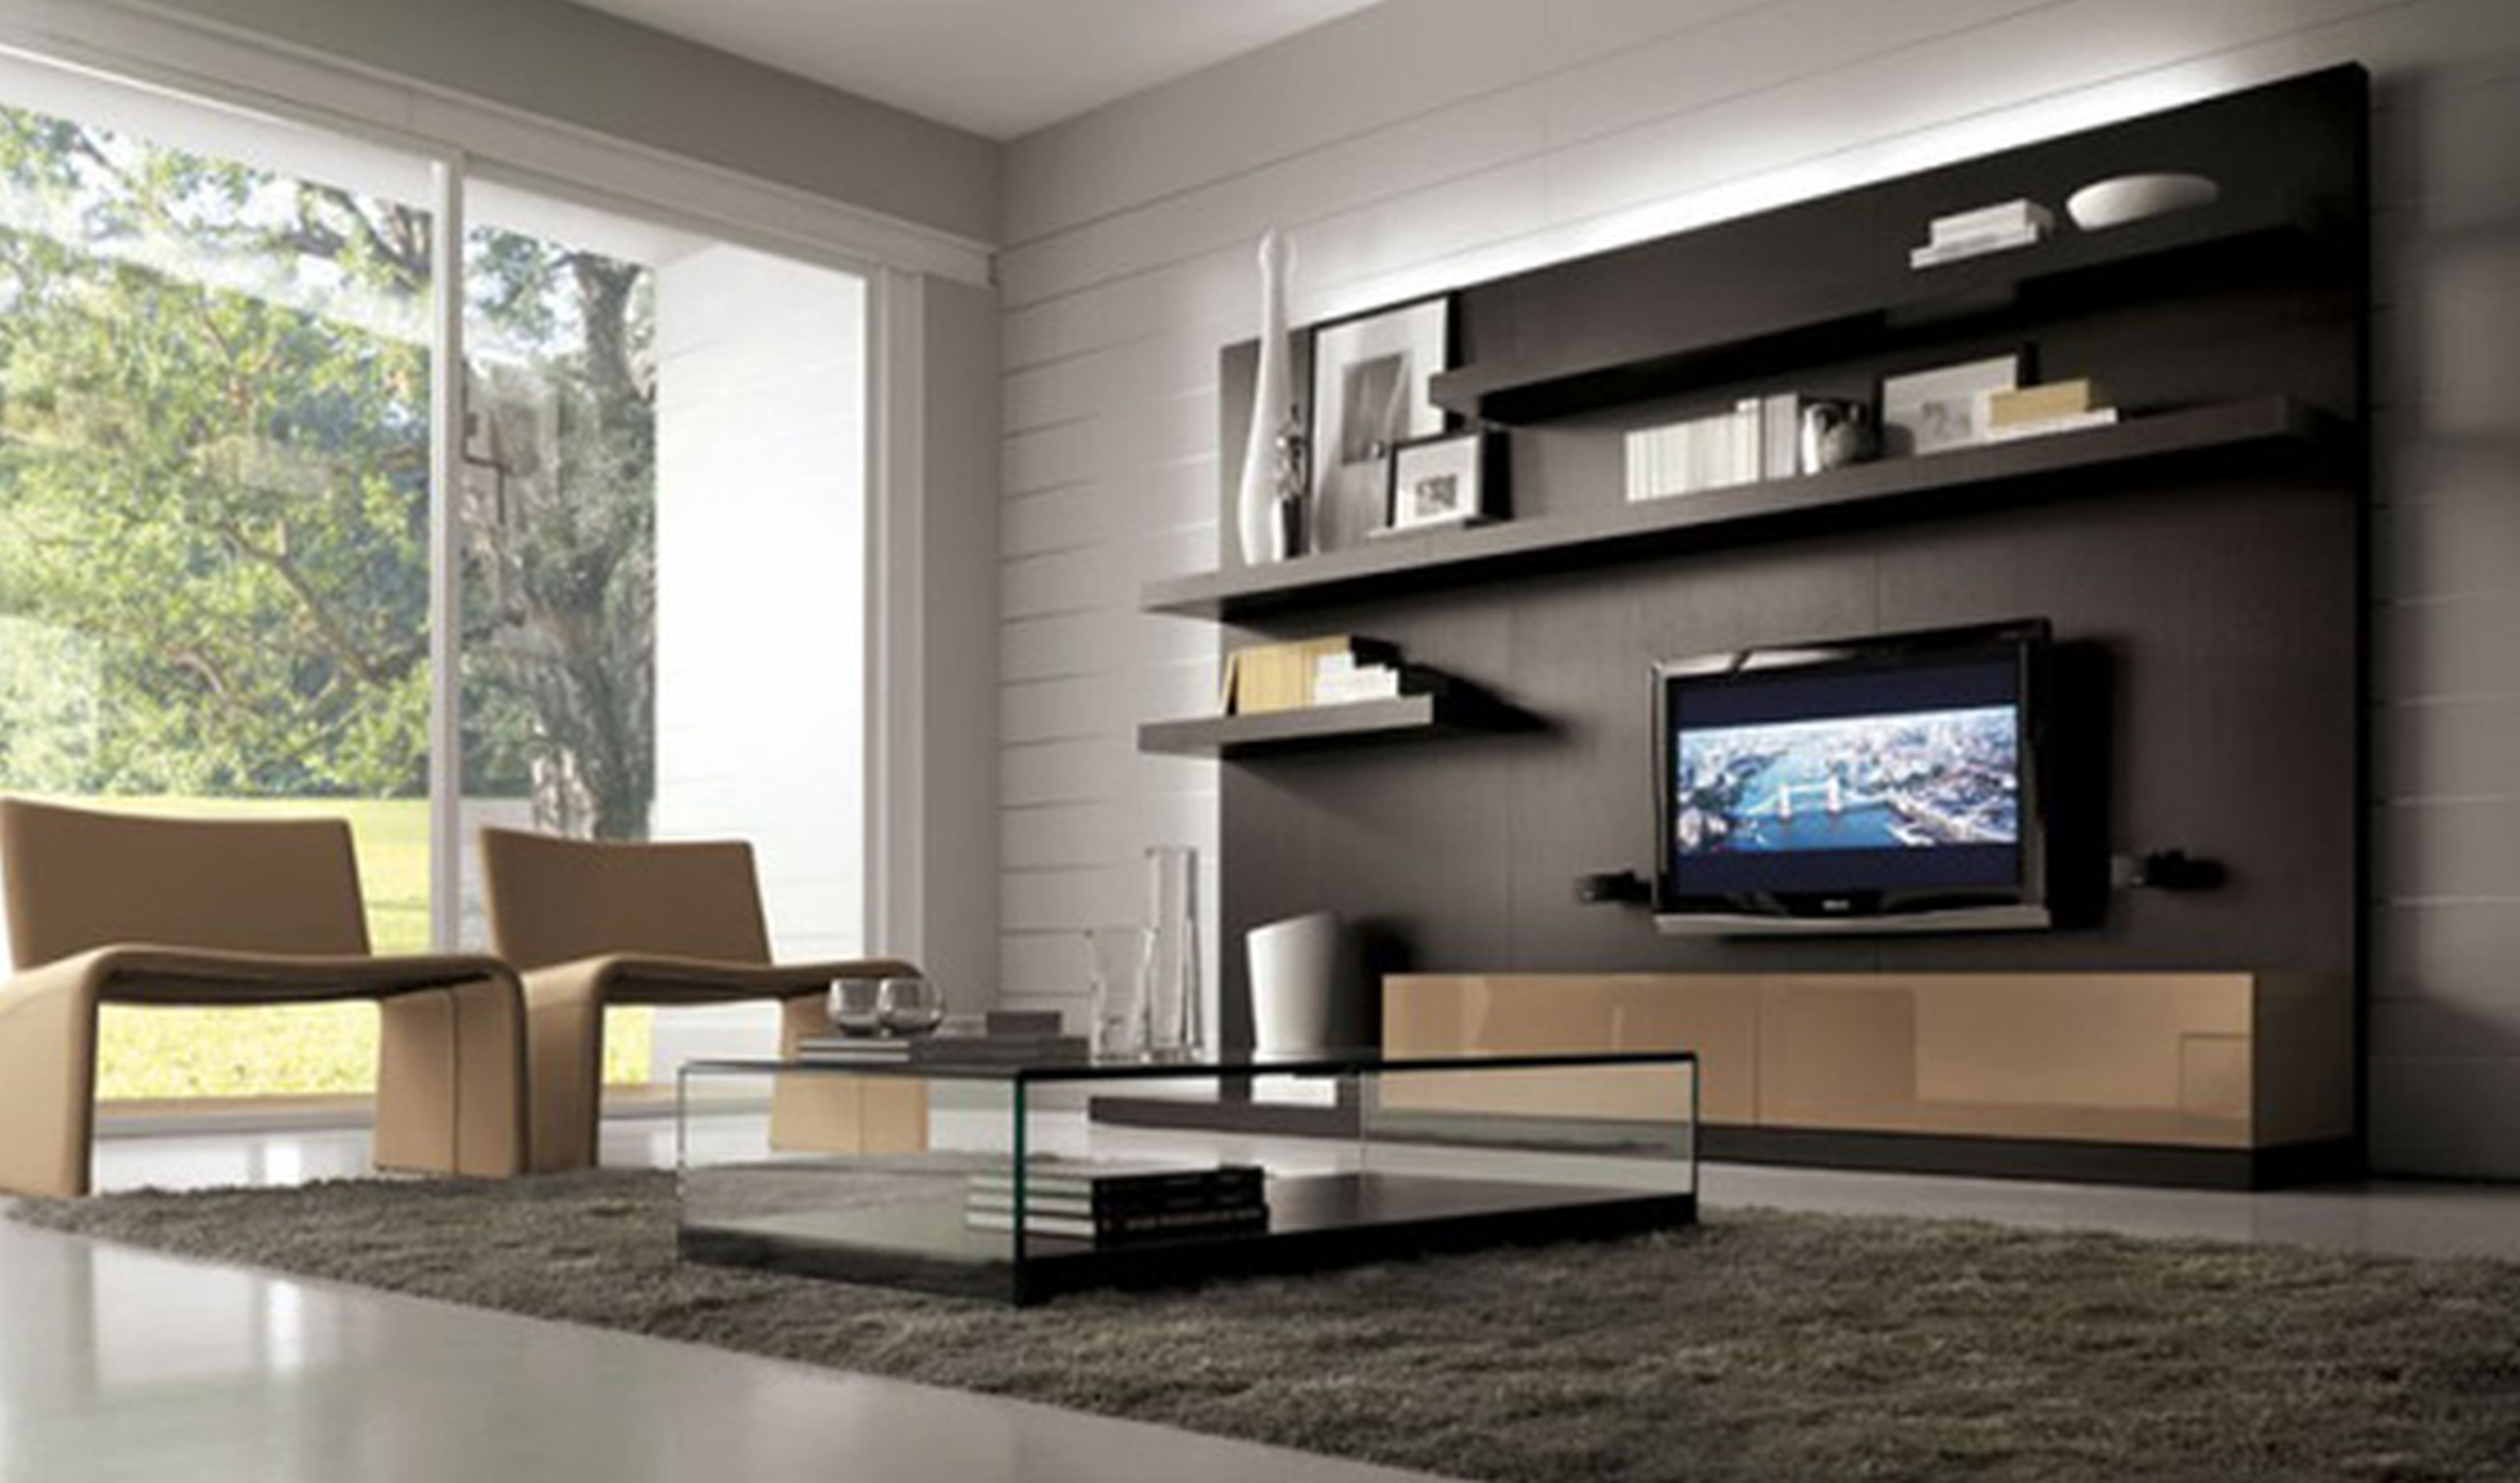 ... for small spaces ikea living room wall shelves living room tv wall